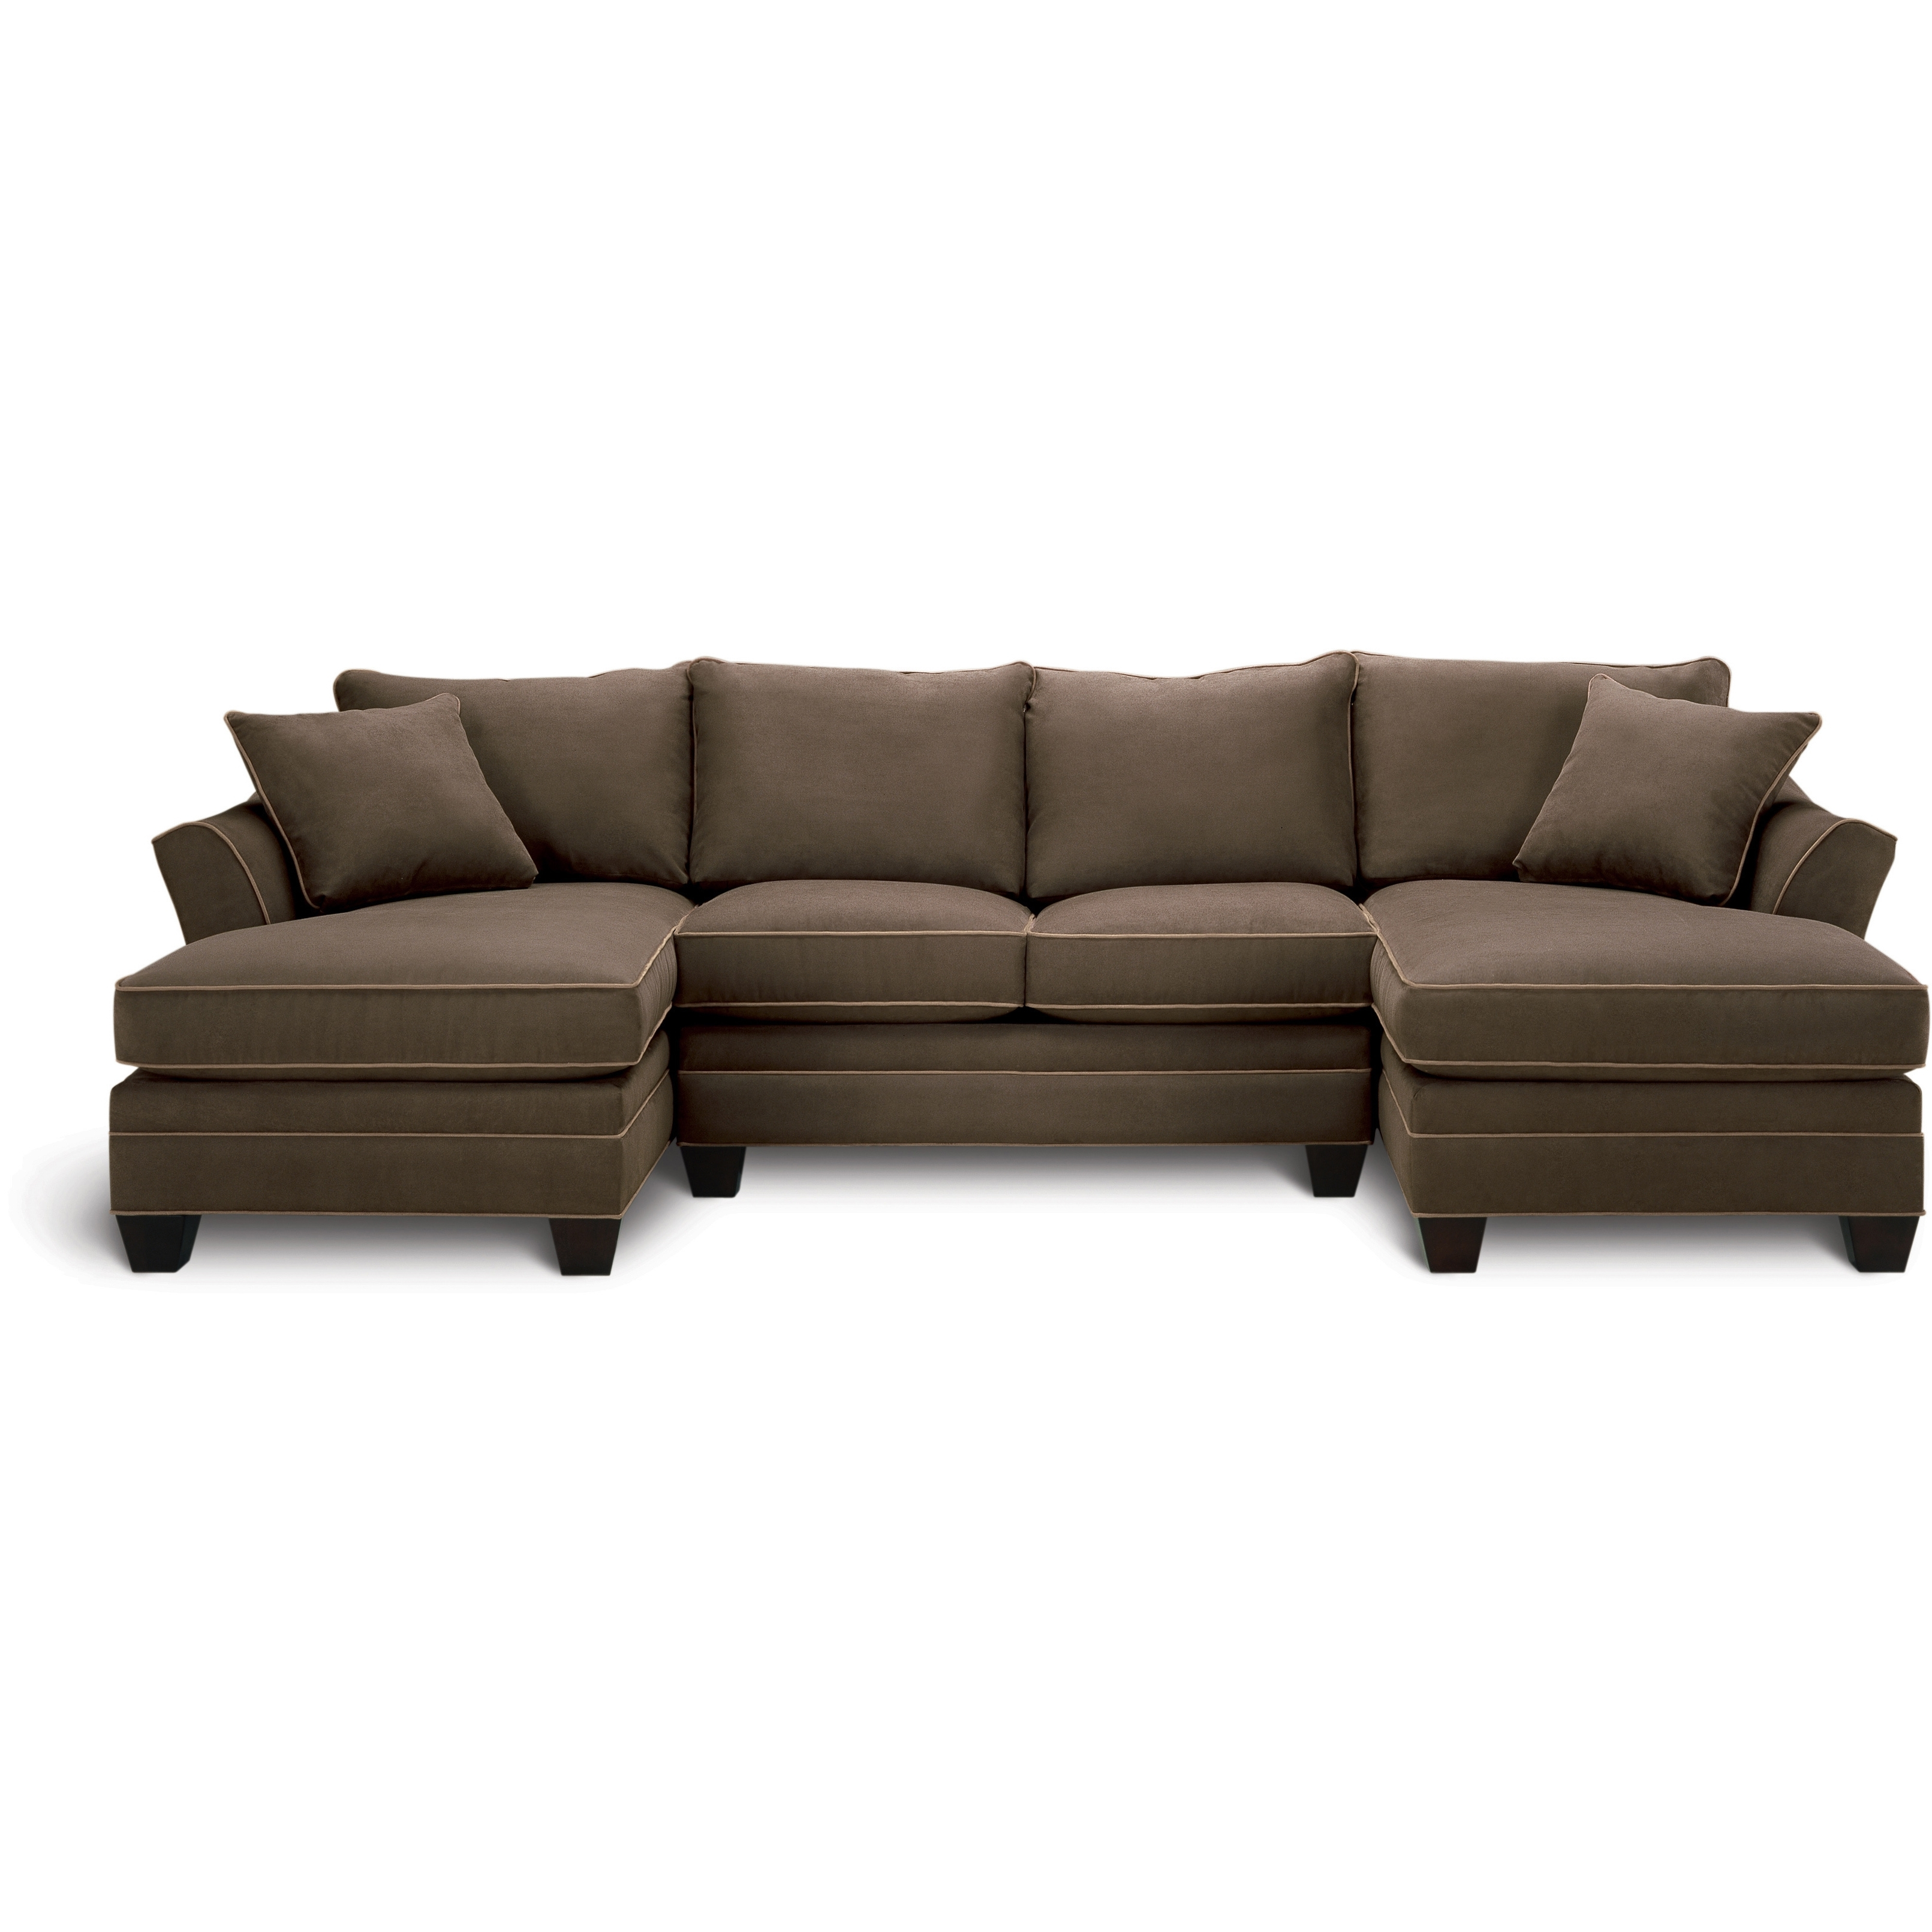 Sectional Sofas Art Van For Latest Make The Most Of Your Space With The Dillon Sectional That Offers (View 12 of 20)